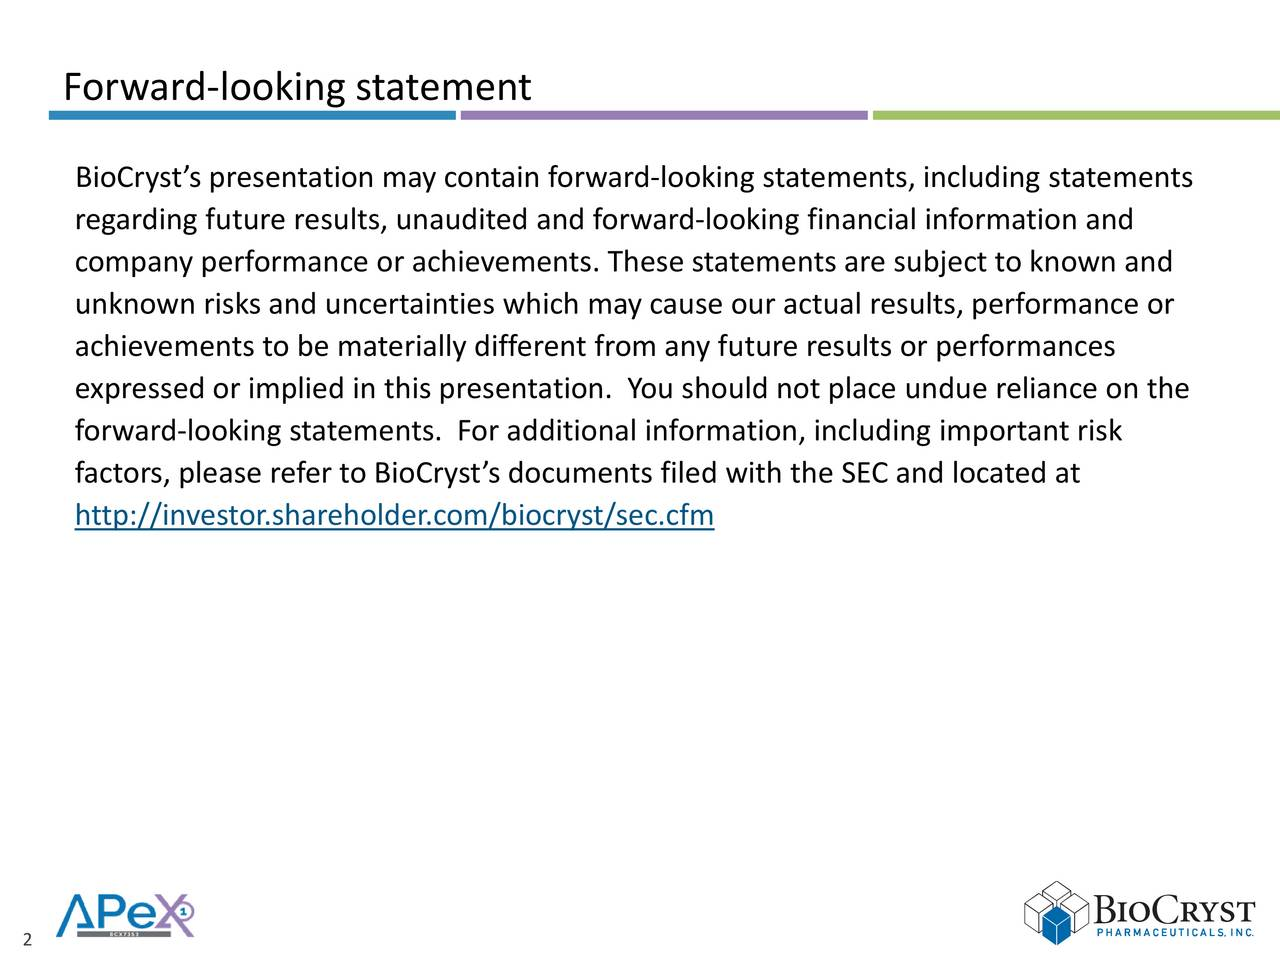 BioCrysts presentation may contain forward-looking statements, including statements regarding future results, unaudited and forward-looking financial information and company performance or achievements. These statements are subject to known and unknown risks and uncertainties which may cause our actual results, performance or achievements to be materially different from any future results or performances expressed or implied in this presentation. You should not place undue reliance on the forward-looking statements. For additional information, including important risk factors, please refer to BioCrysts documents filed with the SEC and located at http://investor.shareholder.com/biocryst/sec.cfm